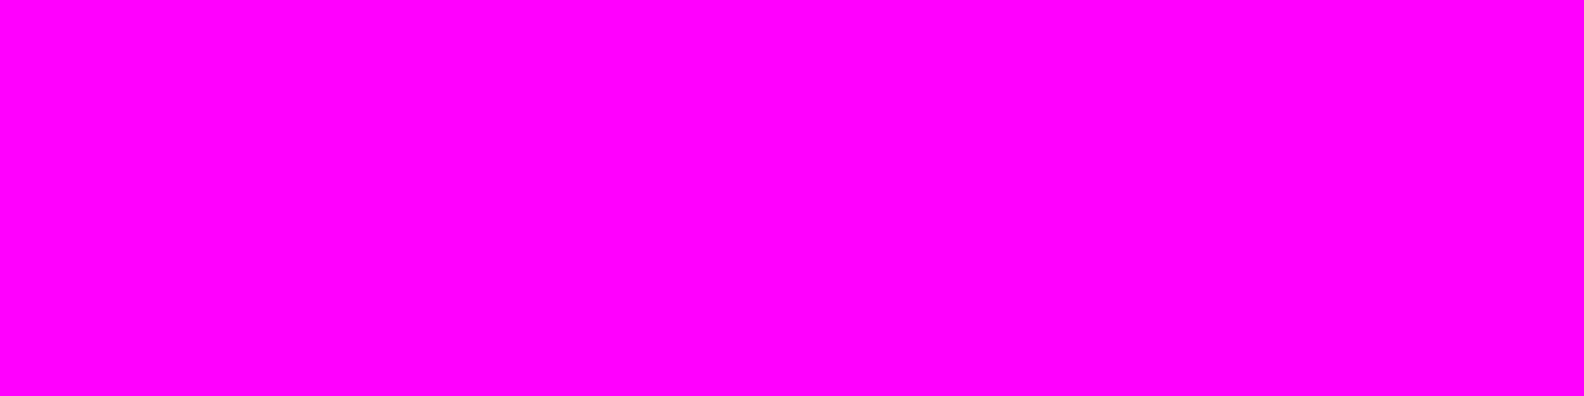 1584x396 Fuchsia Solid Color Background